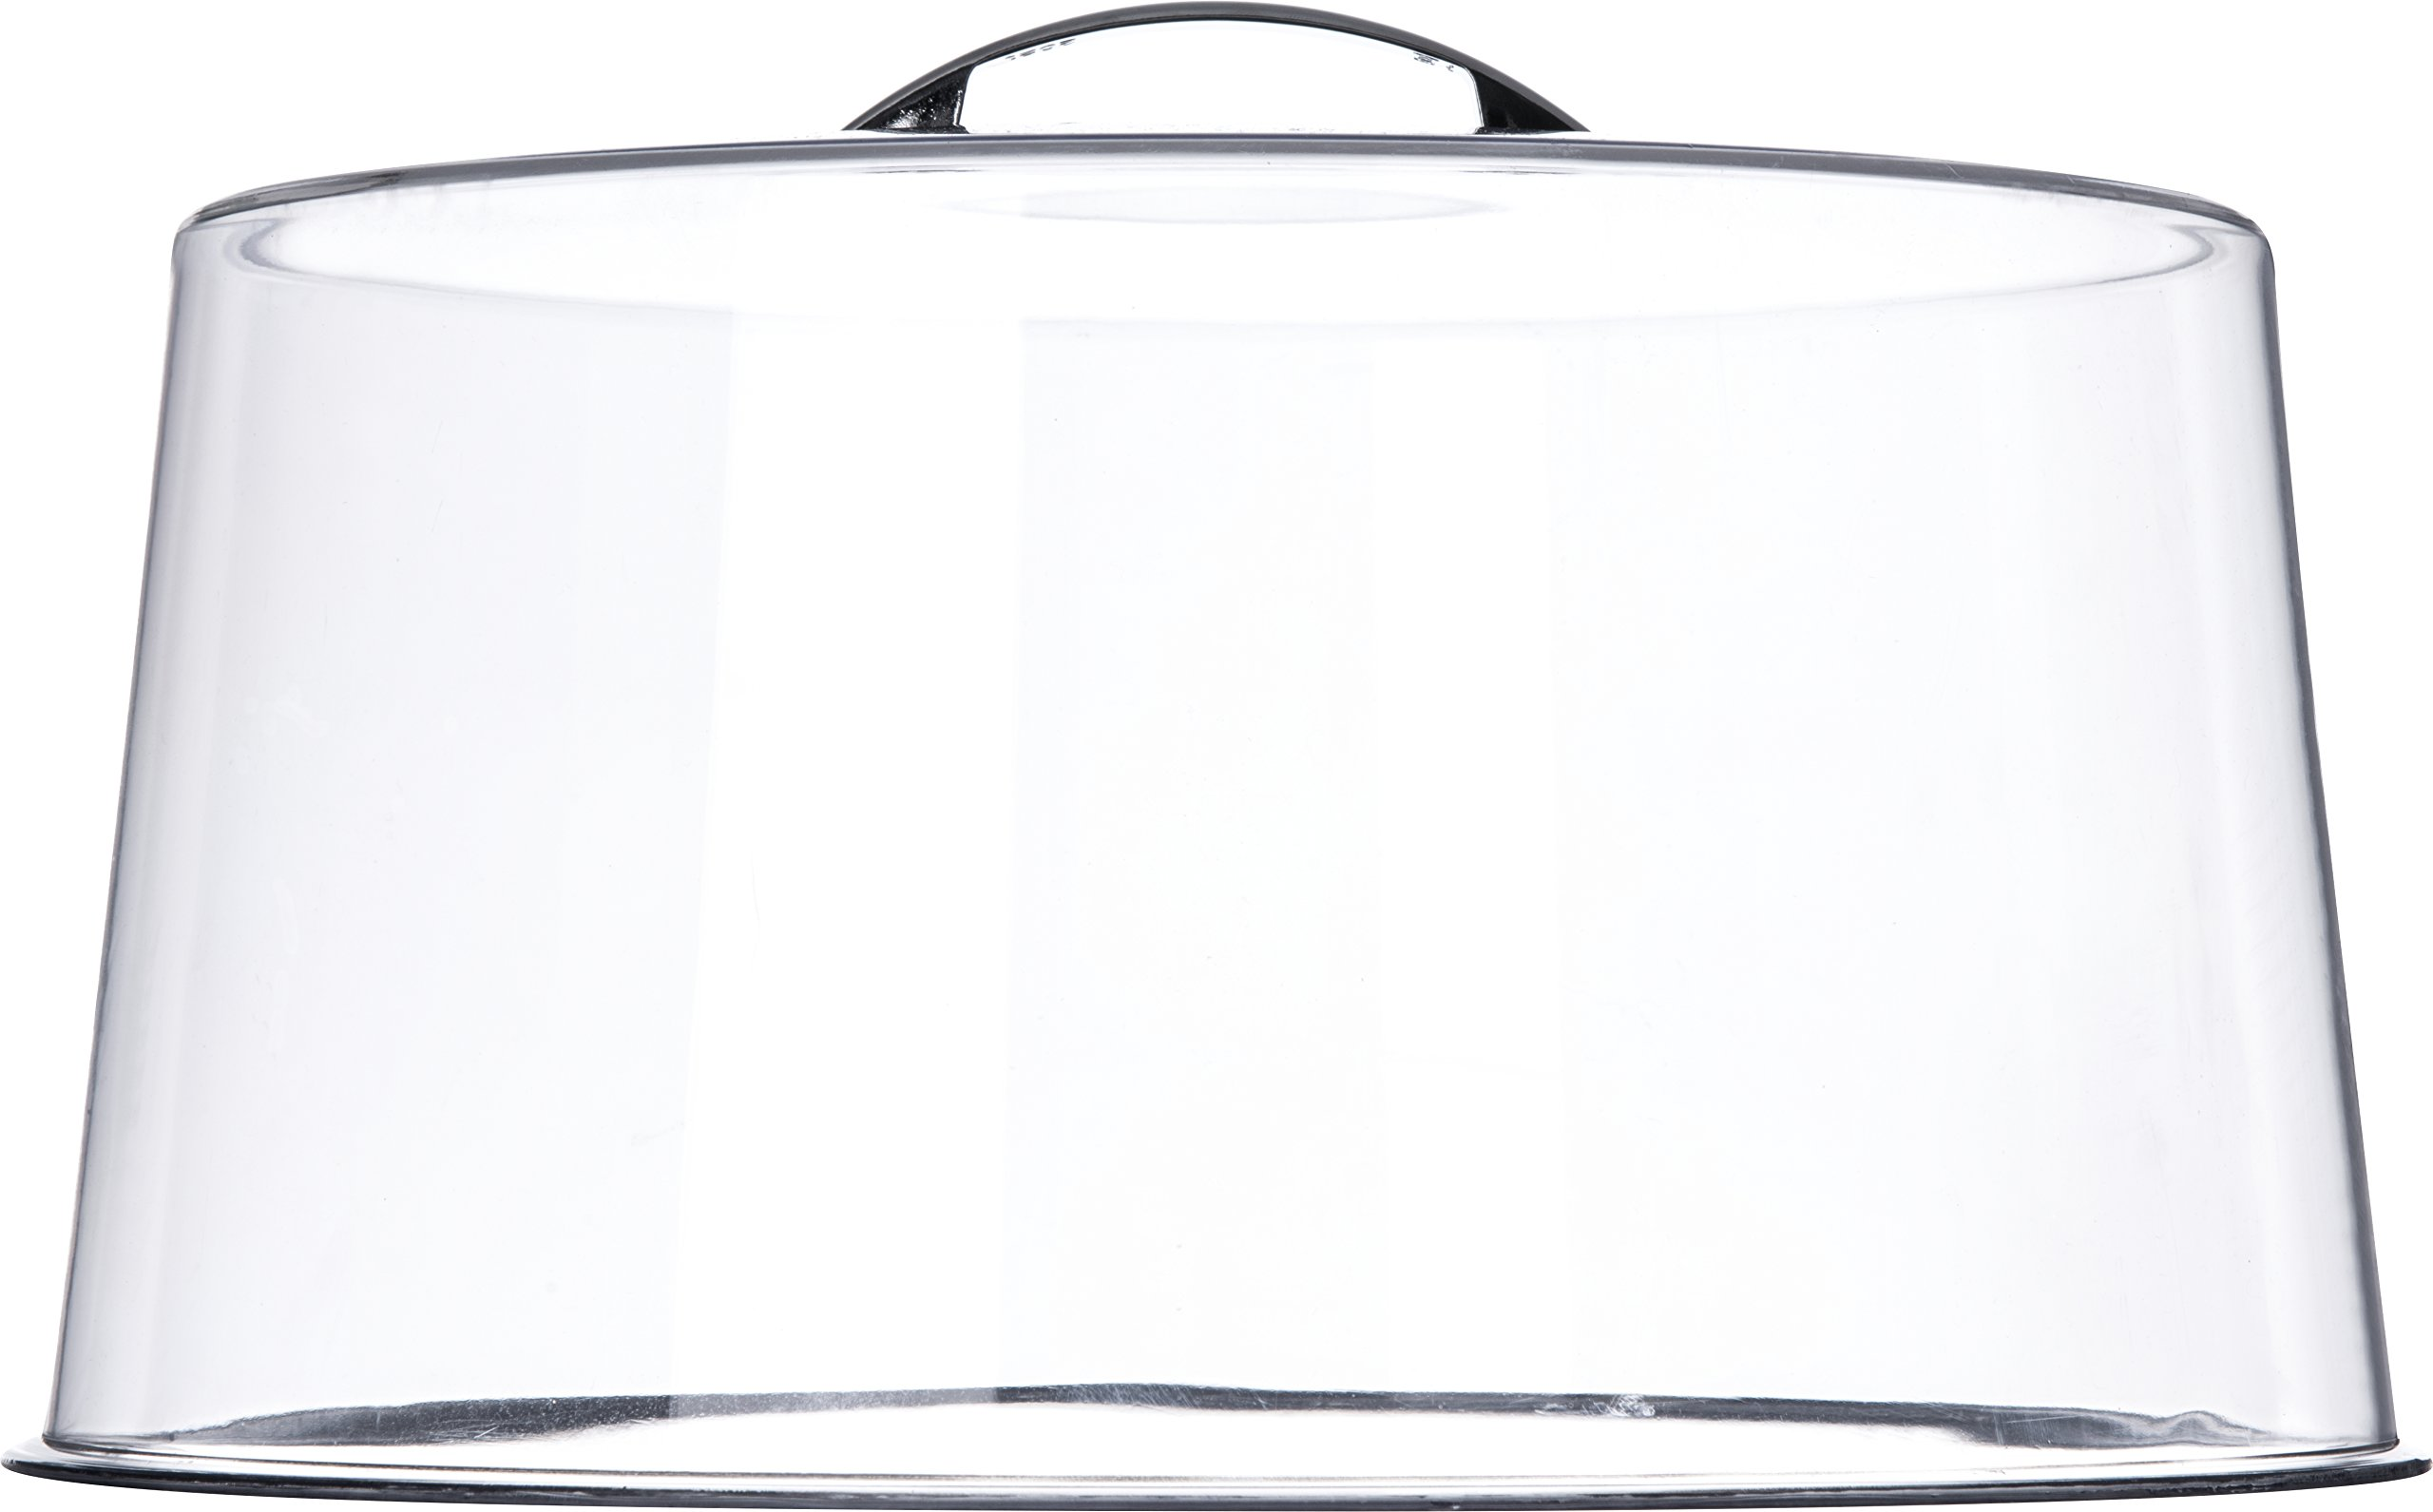 Carlisle 251207 Shatterproof 12'' Cake Cover / Dome, 6'' High (Pack of 6) by Carlisle (Image #1)